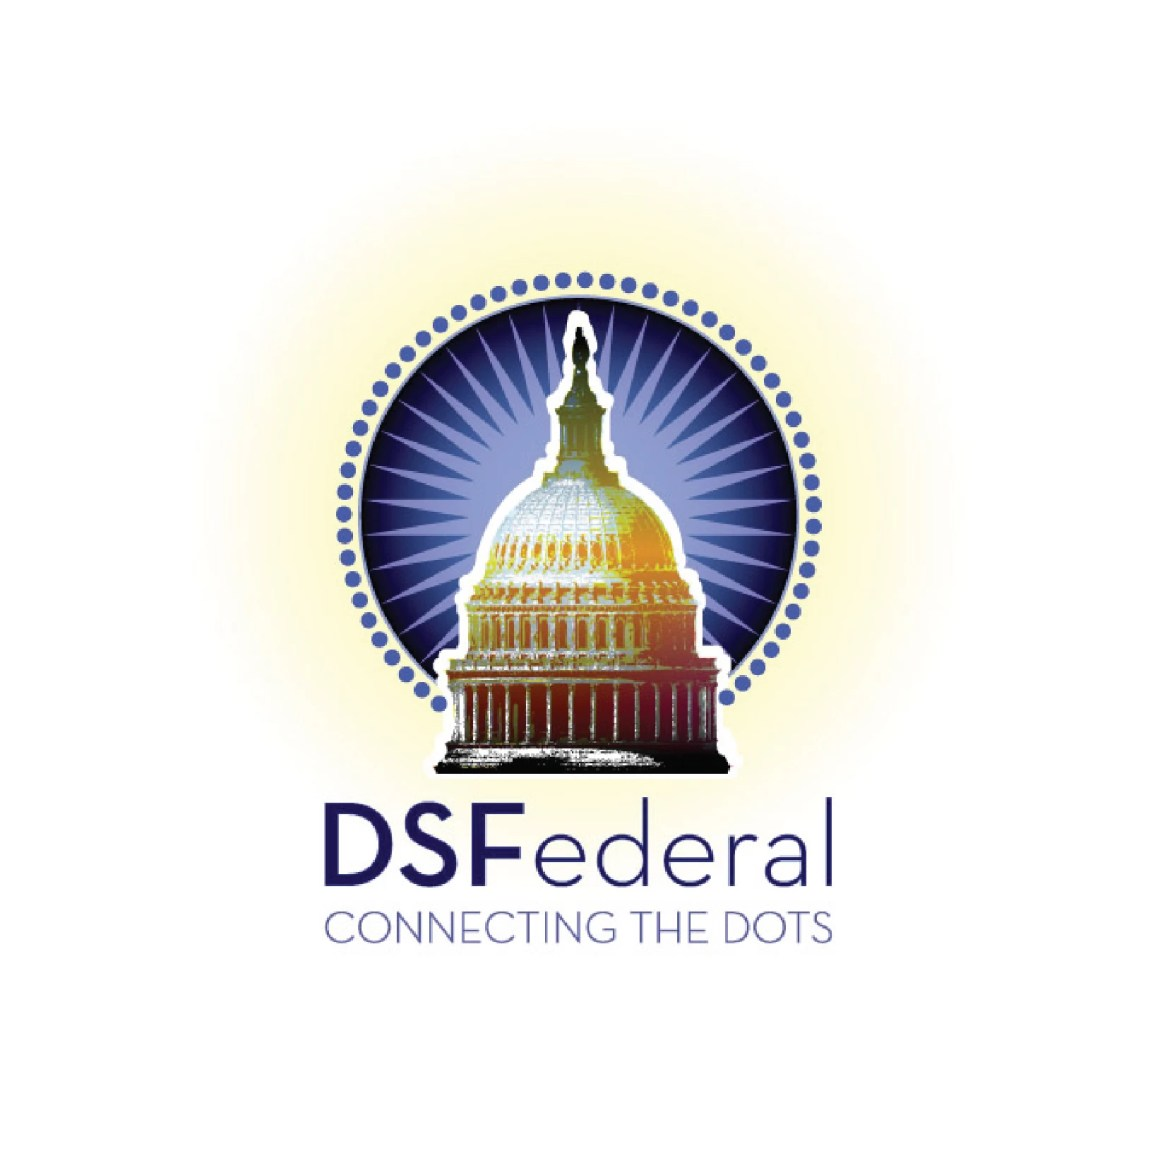 DSFederal - Connecting The Dots Logo